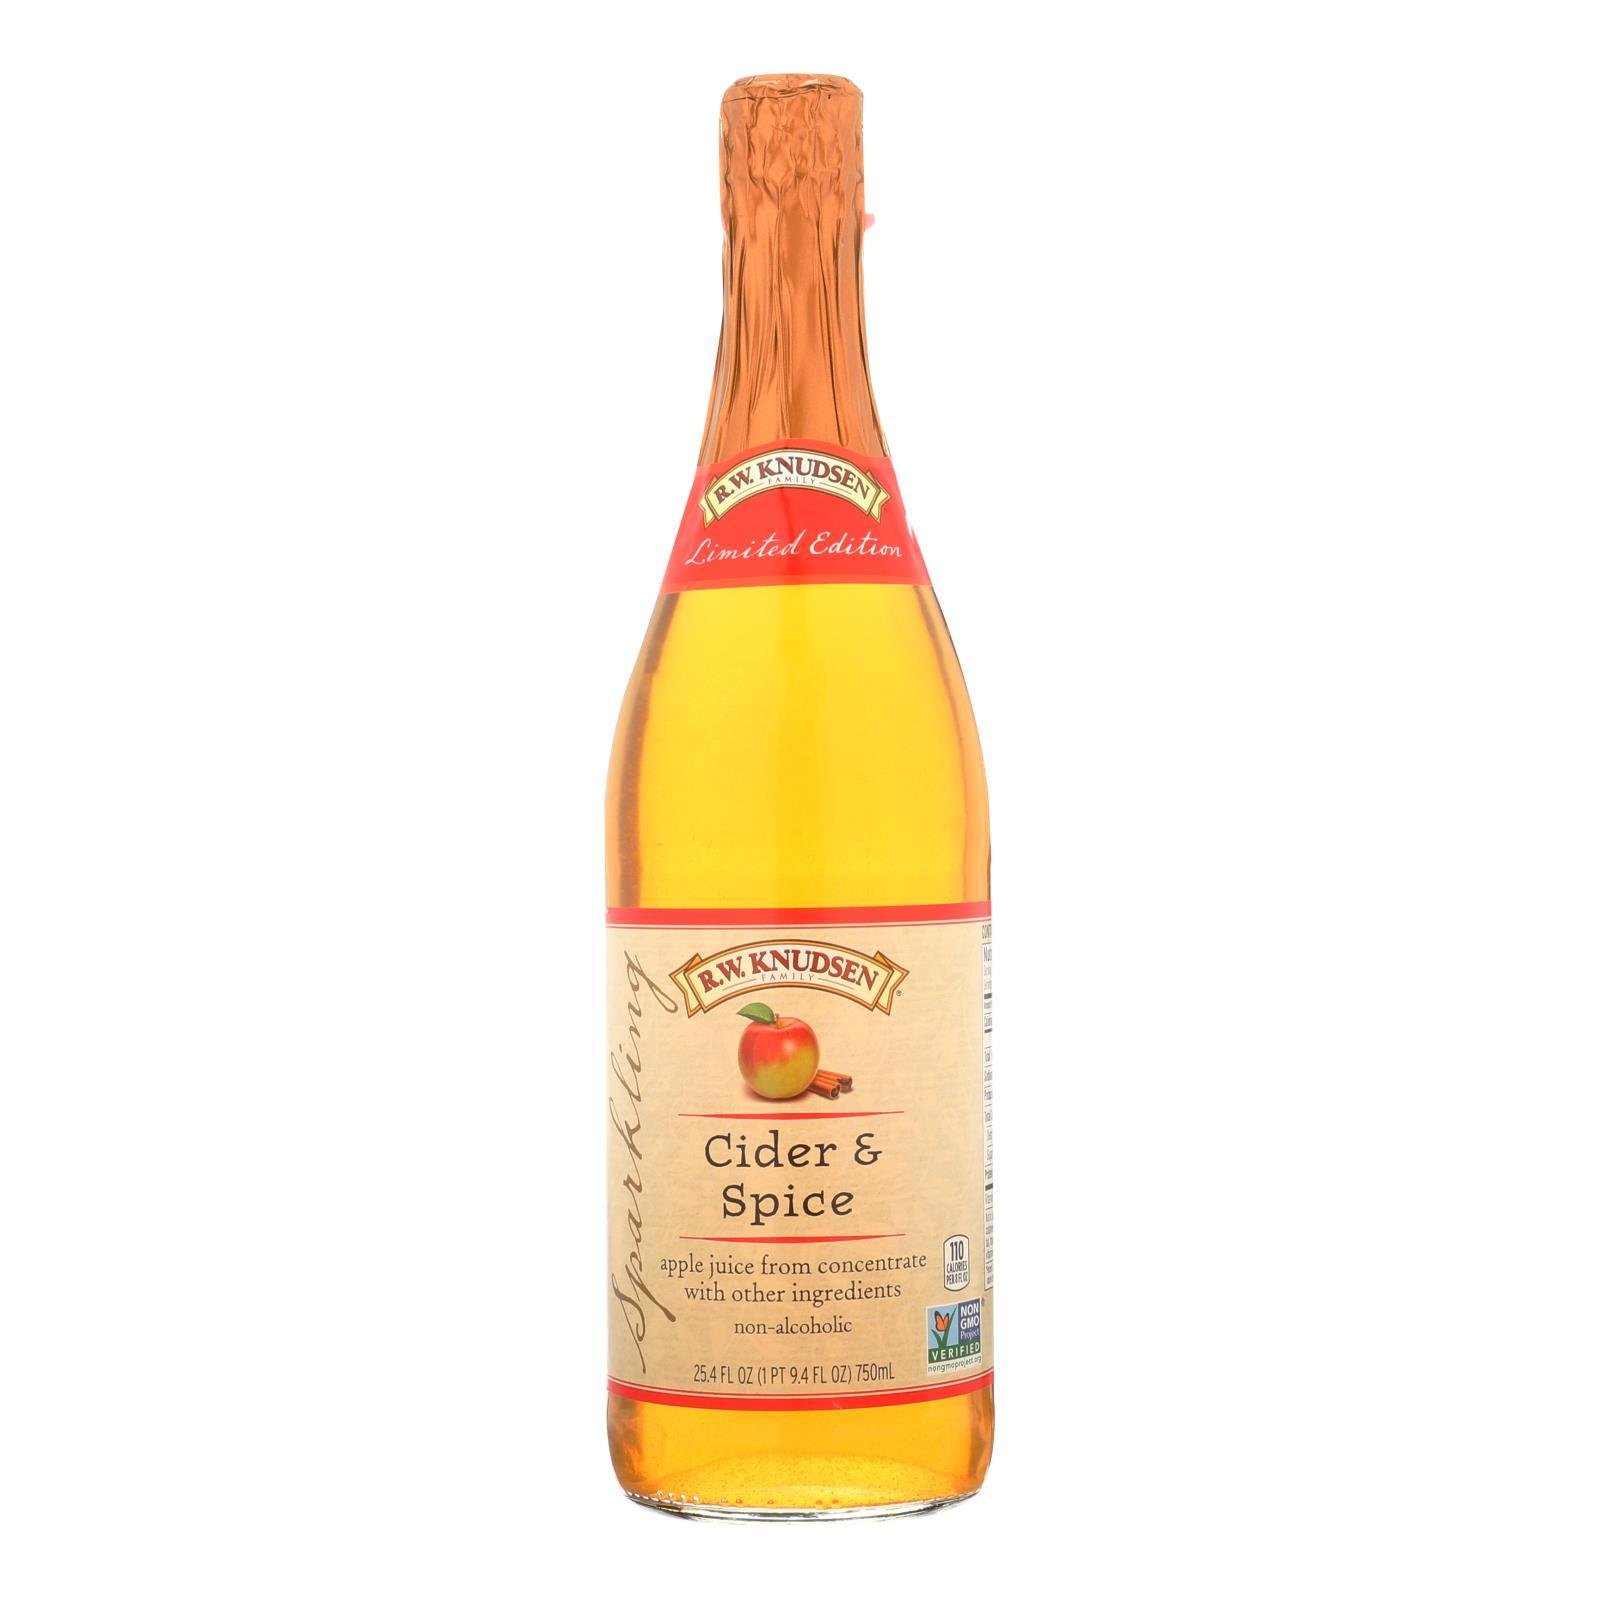 R.w. Knudsen - Sparkling Juice - Cider And Spice - Case Of 12 - 25.4 Fl Oz. - BeeGreen